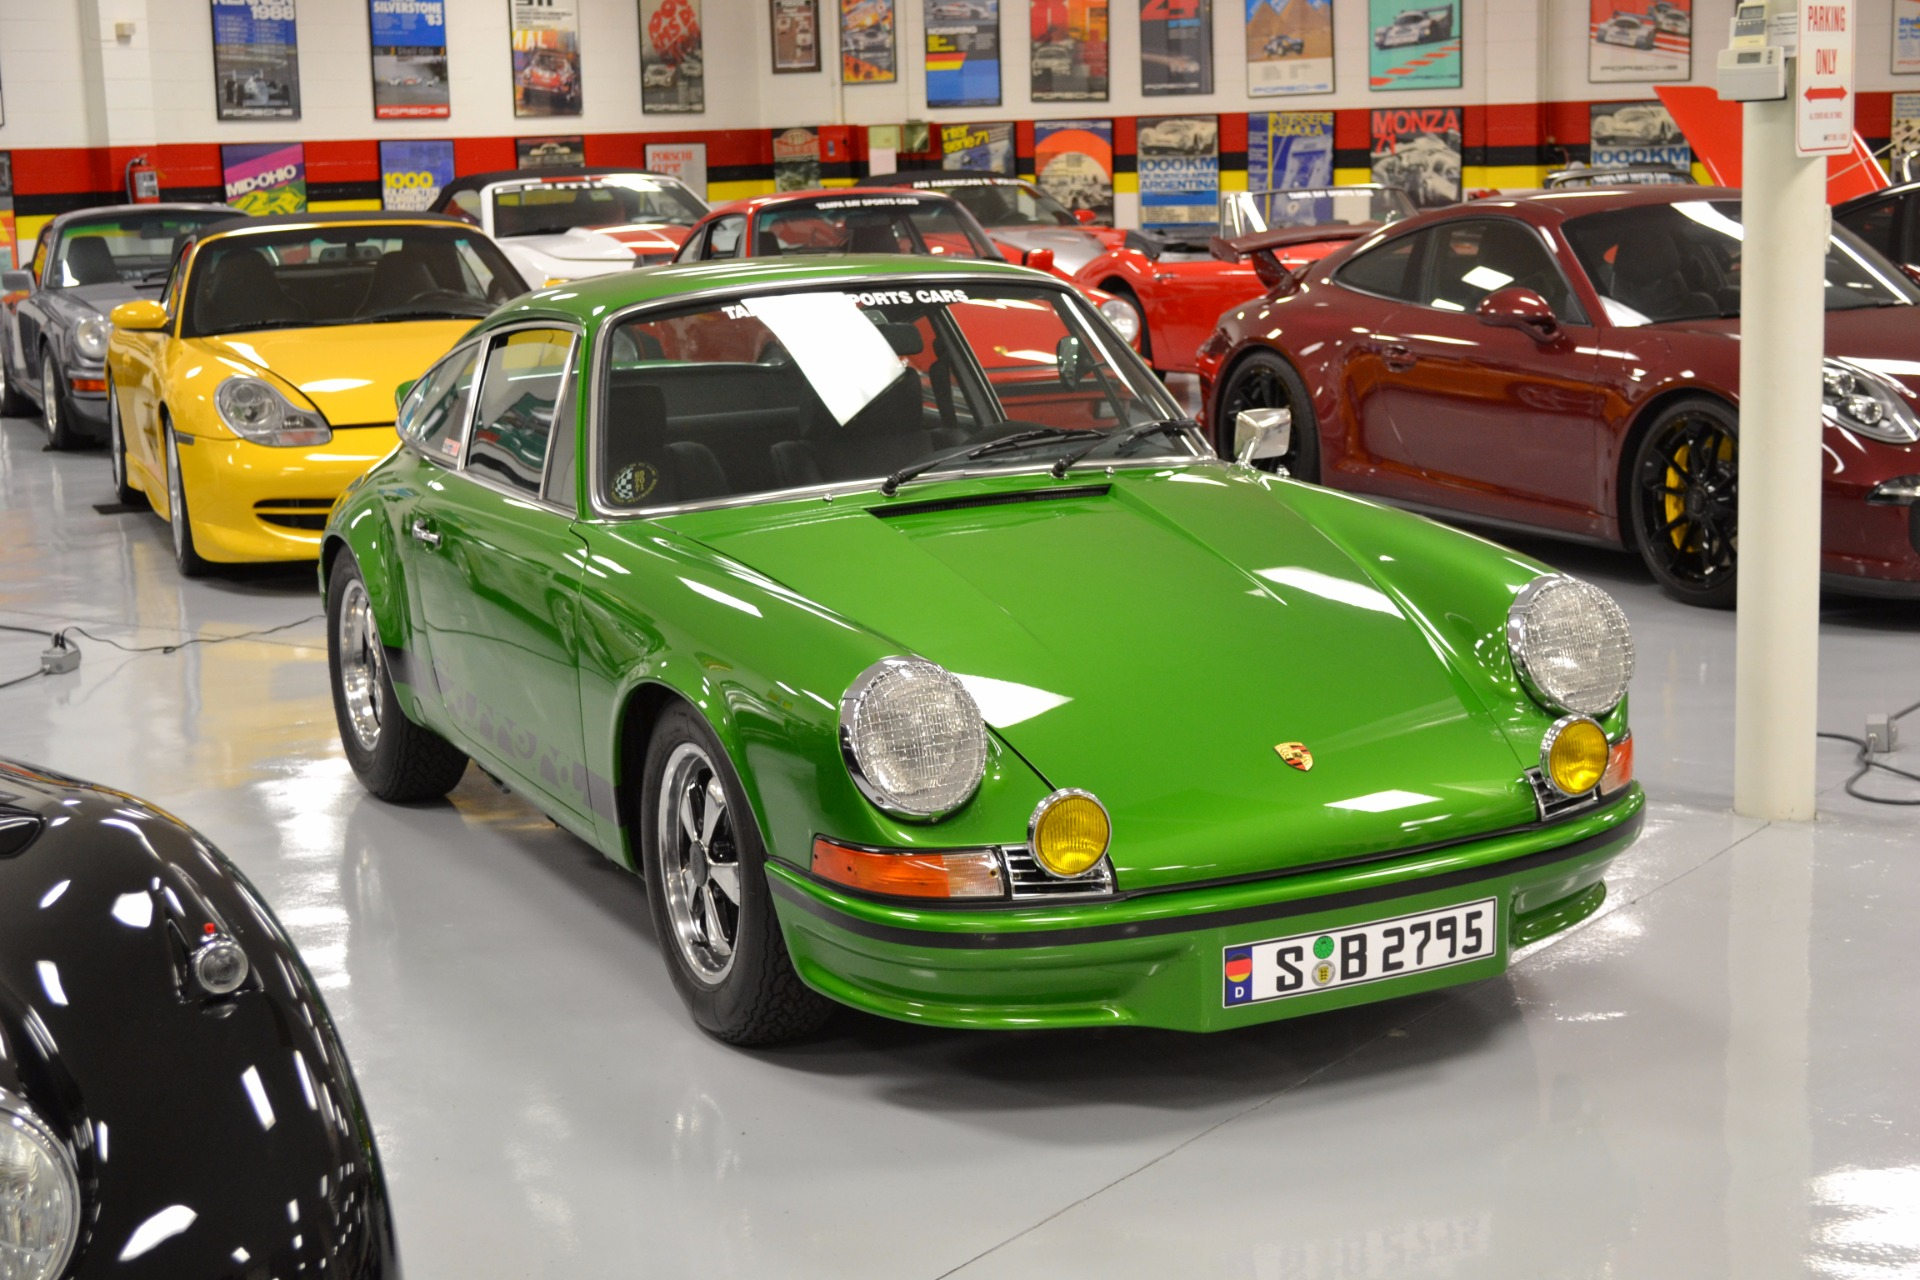 1973 Porsche 911 Carrera Rs Doppelganger For Sale In Pinellas Park 912 Coupe Type Of Engine Used Fl